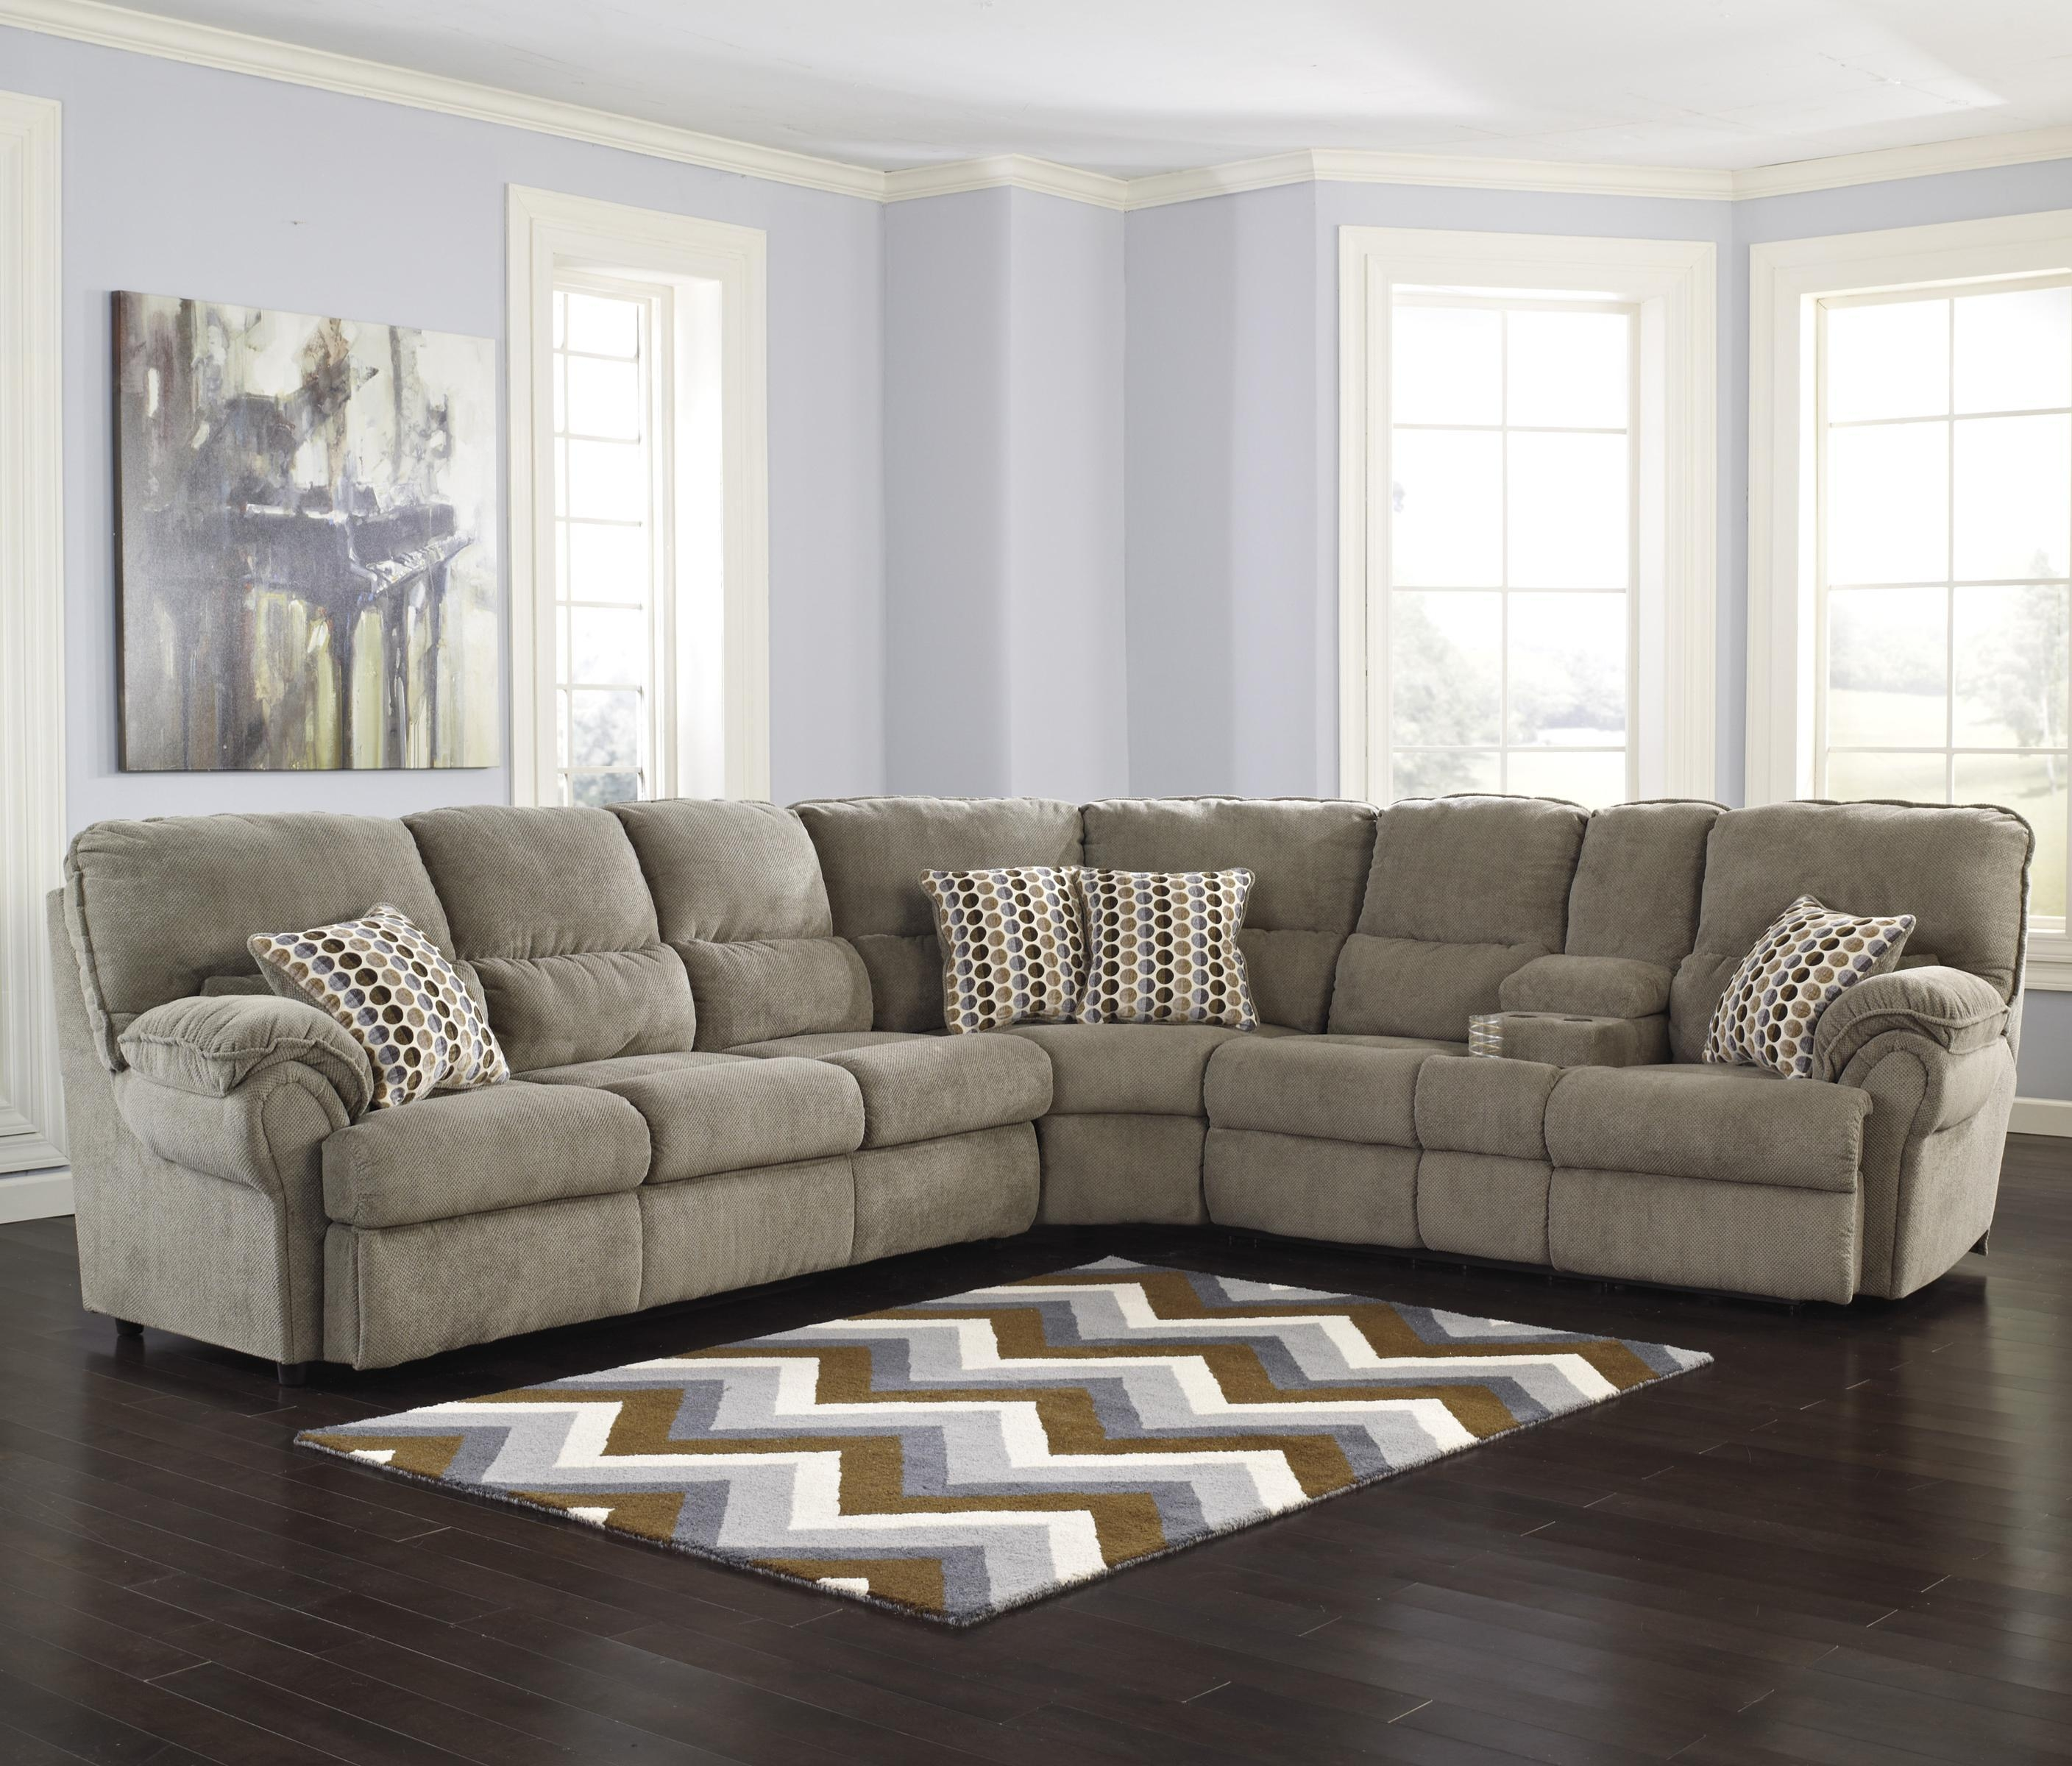 Sectional Sofa With Recliner And Queen Sleeper | Tehranmix Decoration With Sleeper Recliner Sectional (Image 14 of 20)